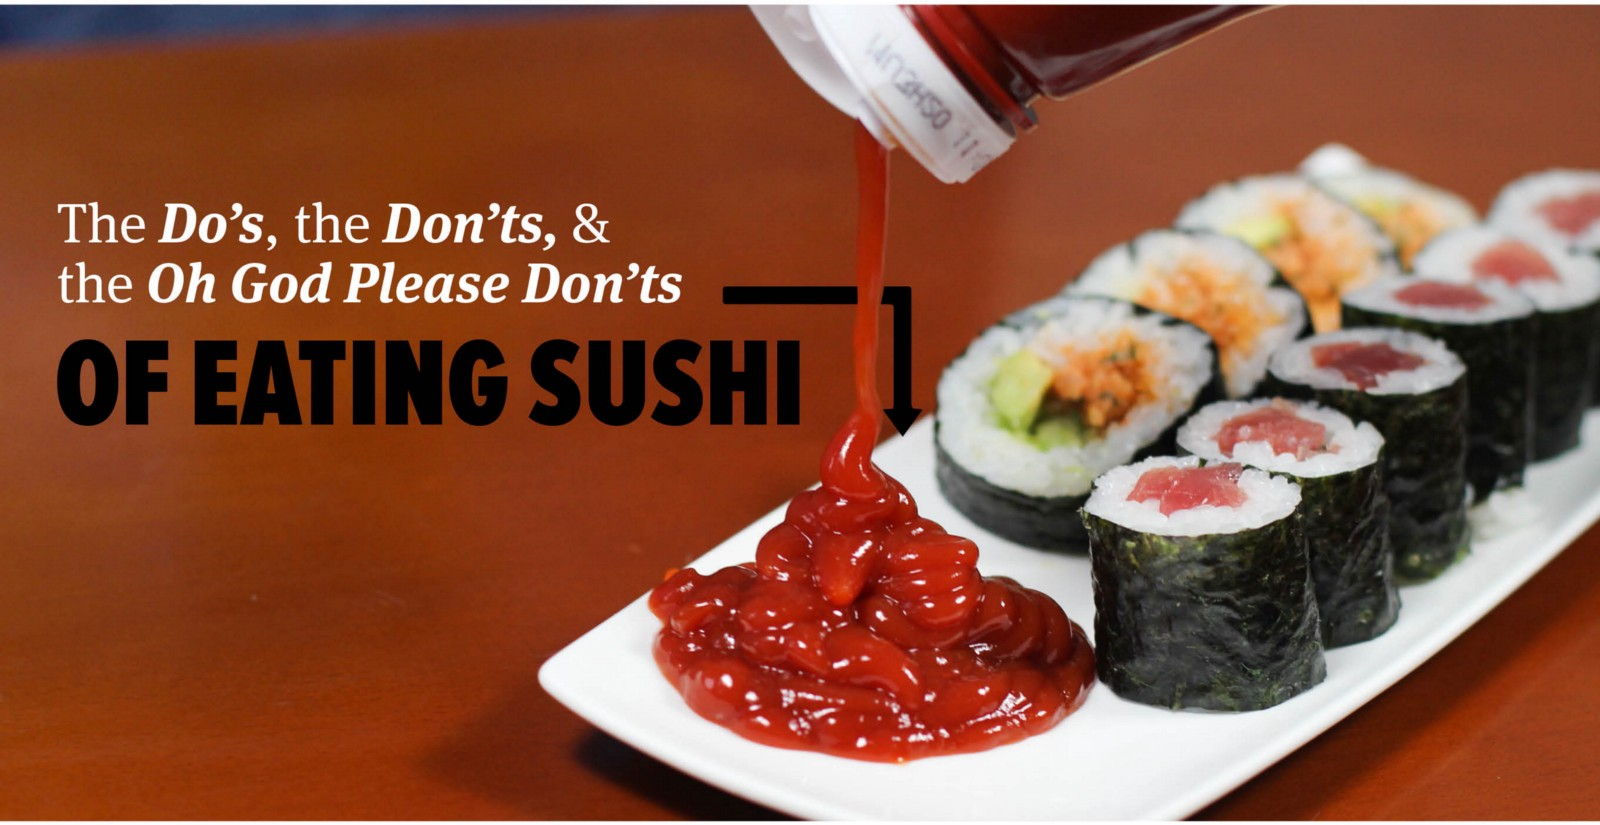 The Dos and Donts of Sushi